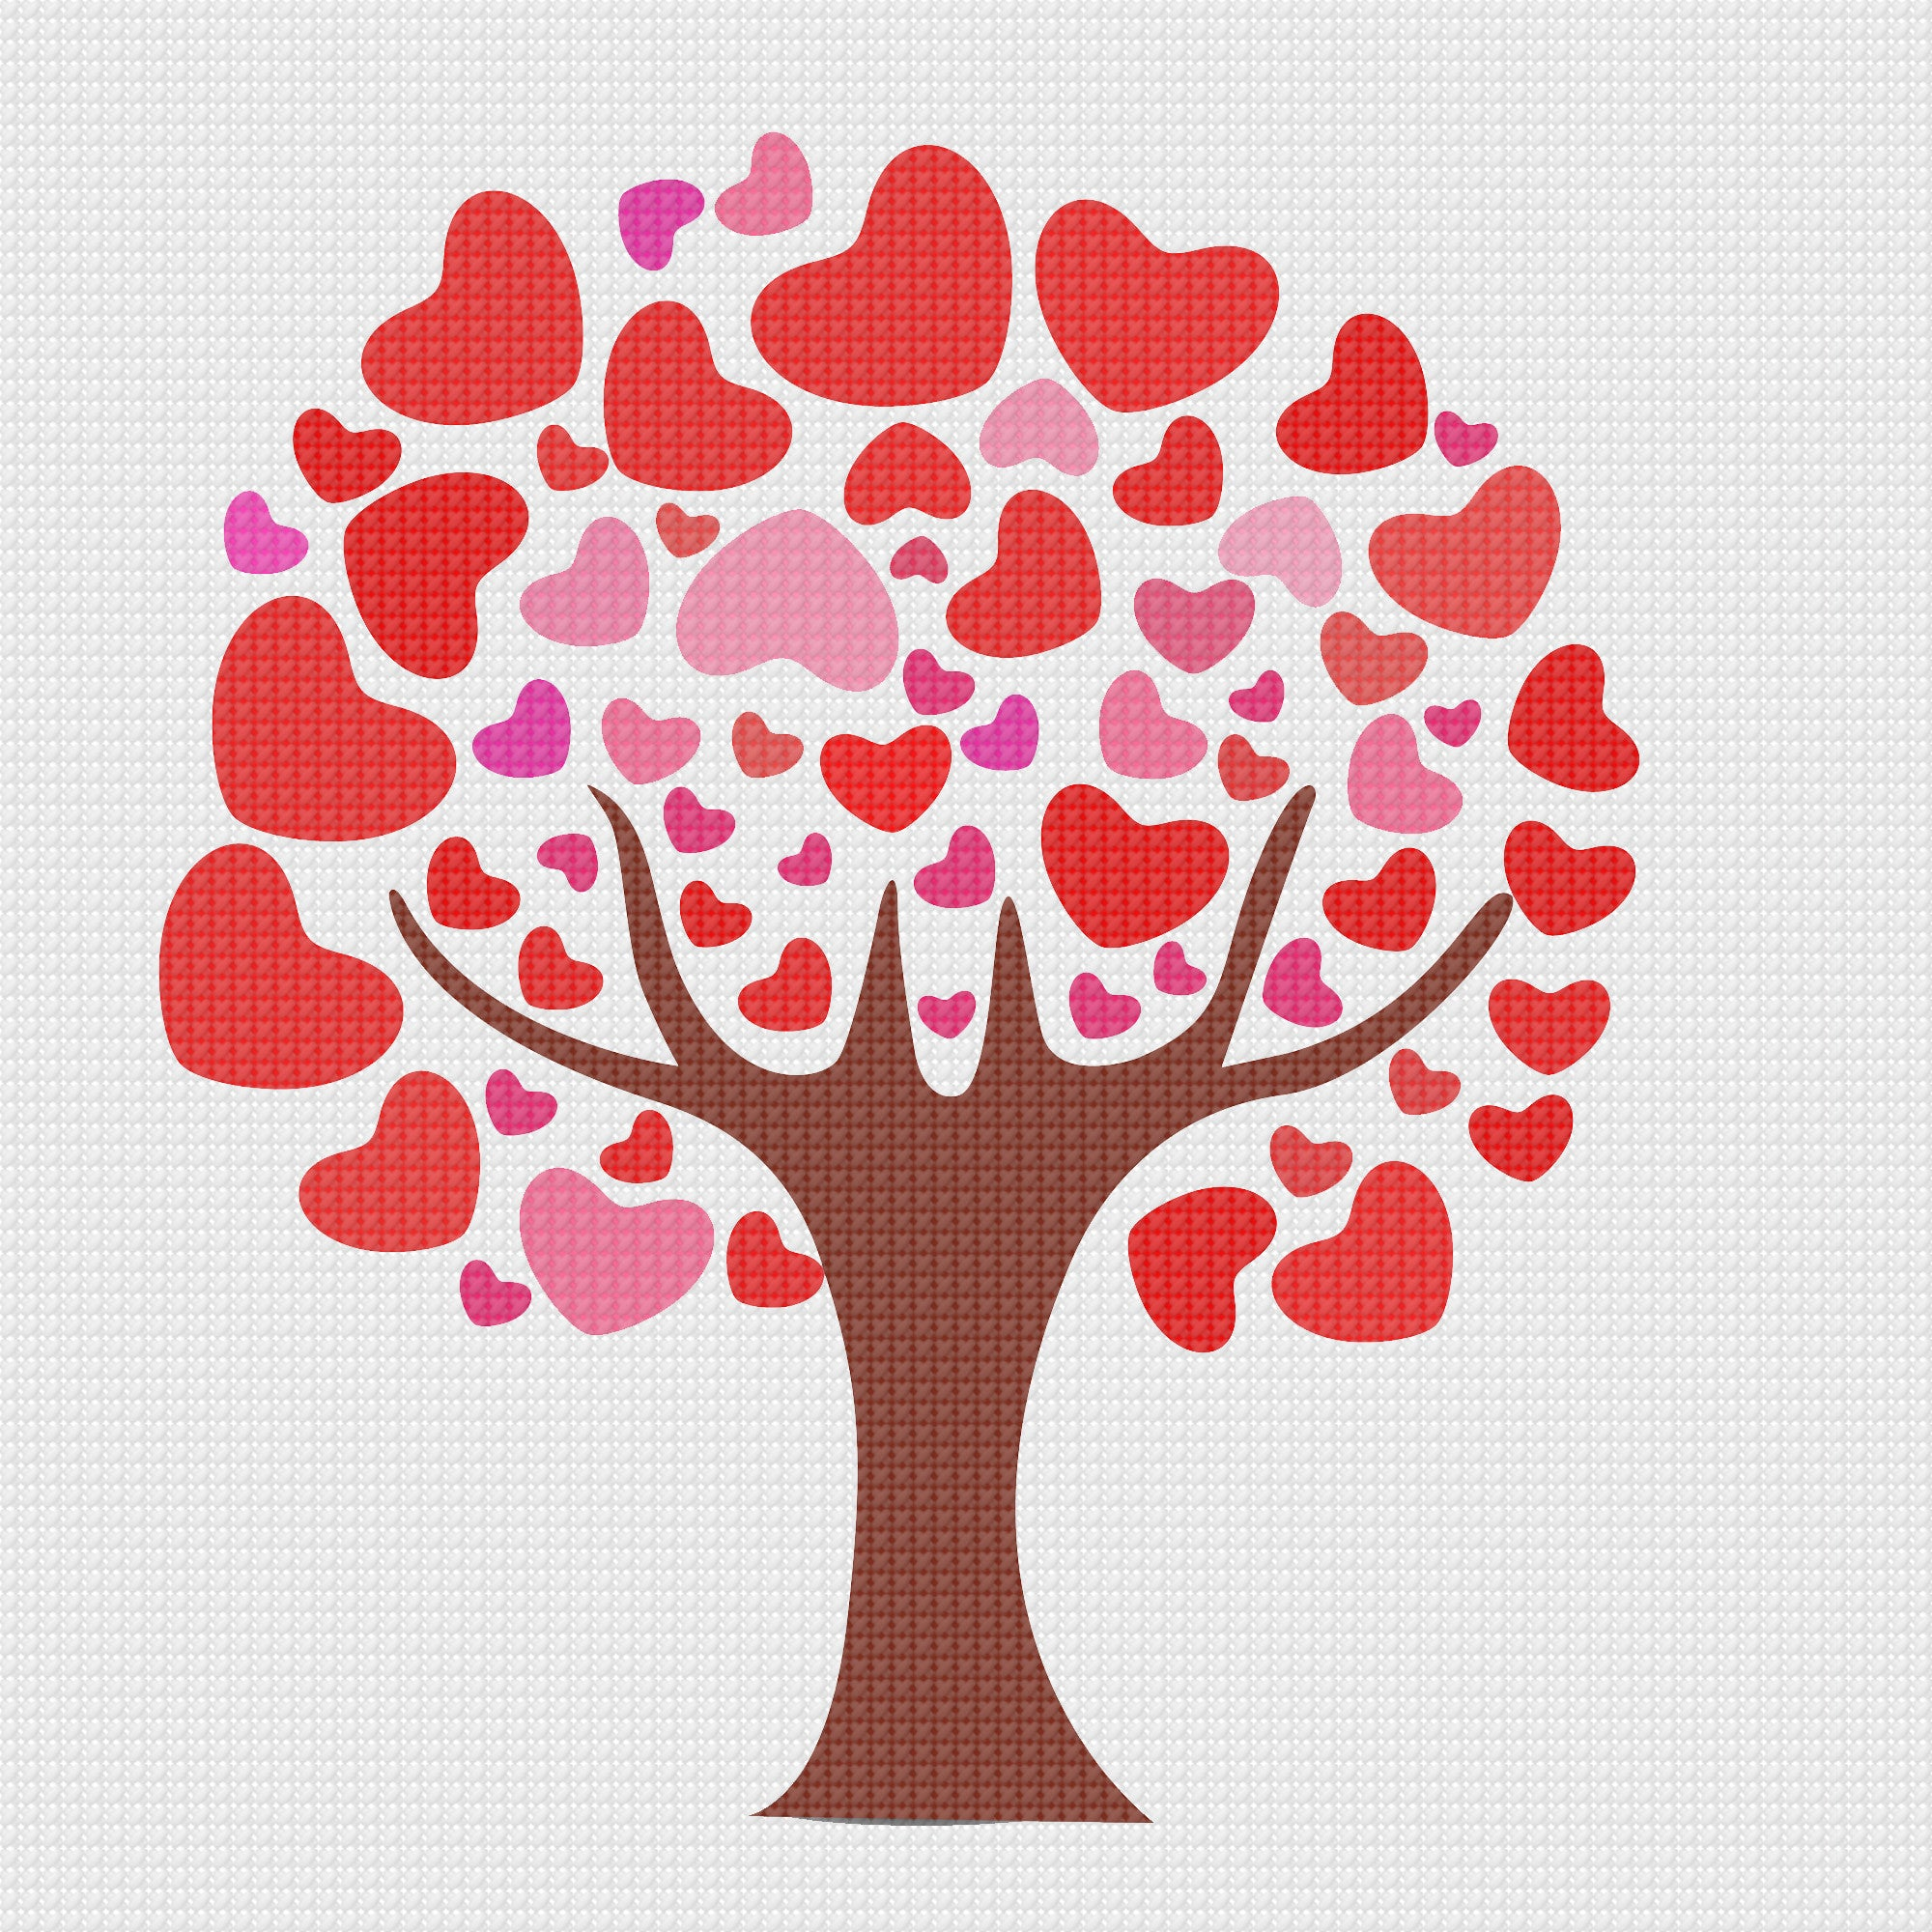 valentine day love tree of hearts sew so simple ™ counted cross